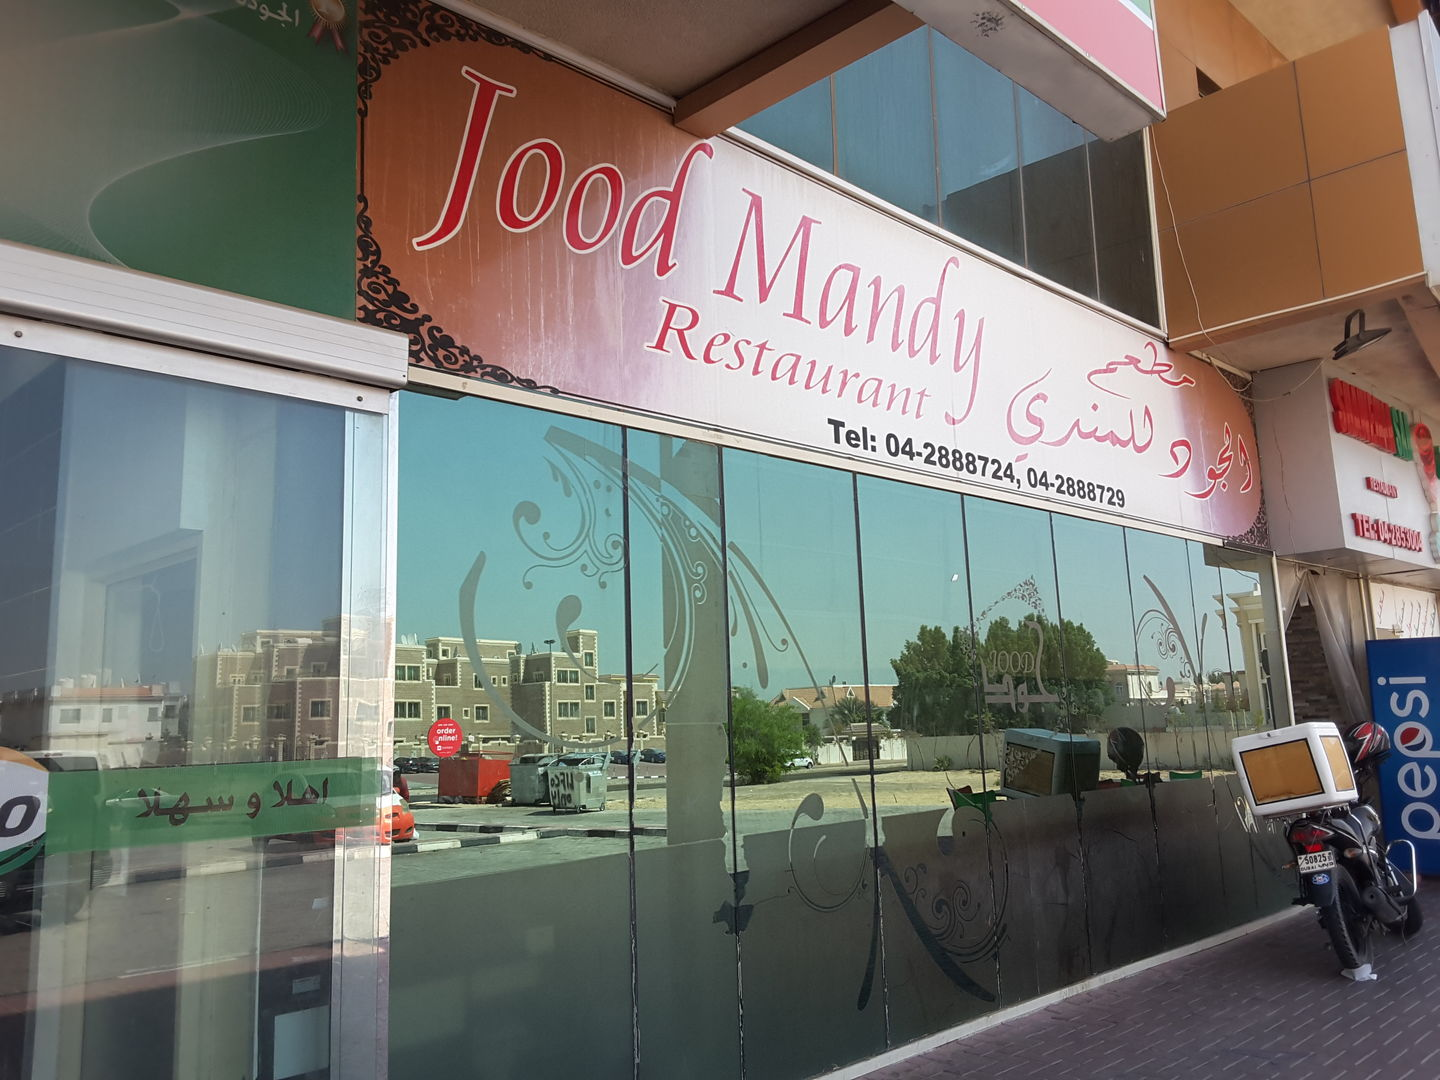 HiDubai-business-al-jood-mandy-restaurant-food-beverage-restaurants-bars-mirdif-dubai-2